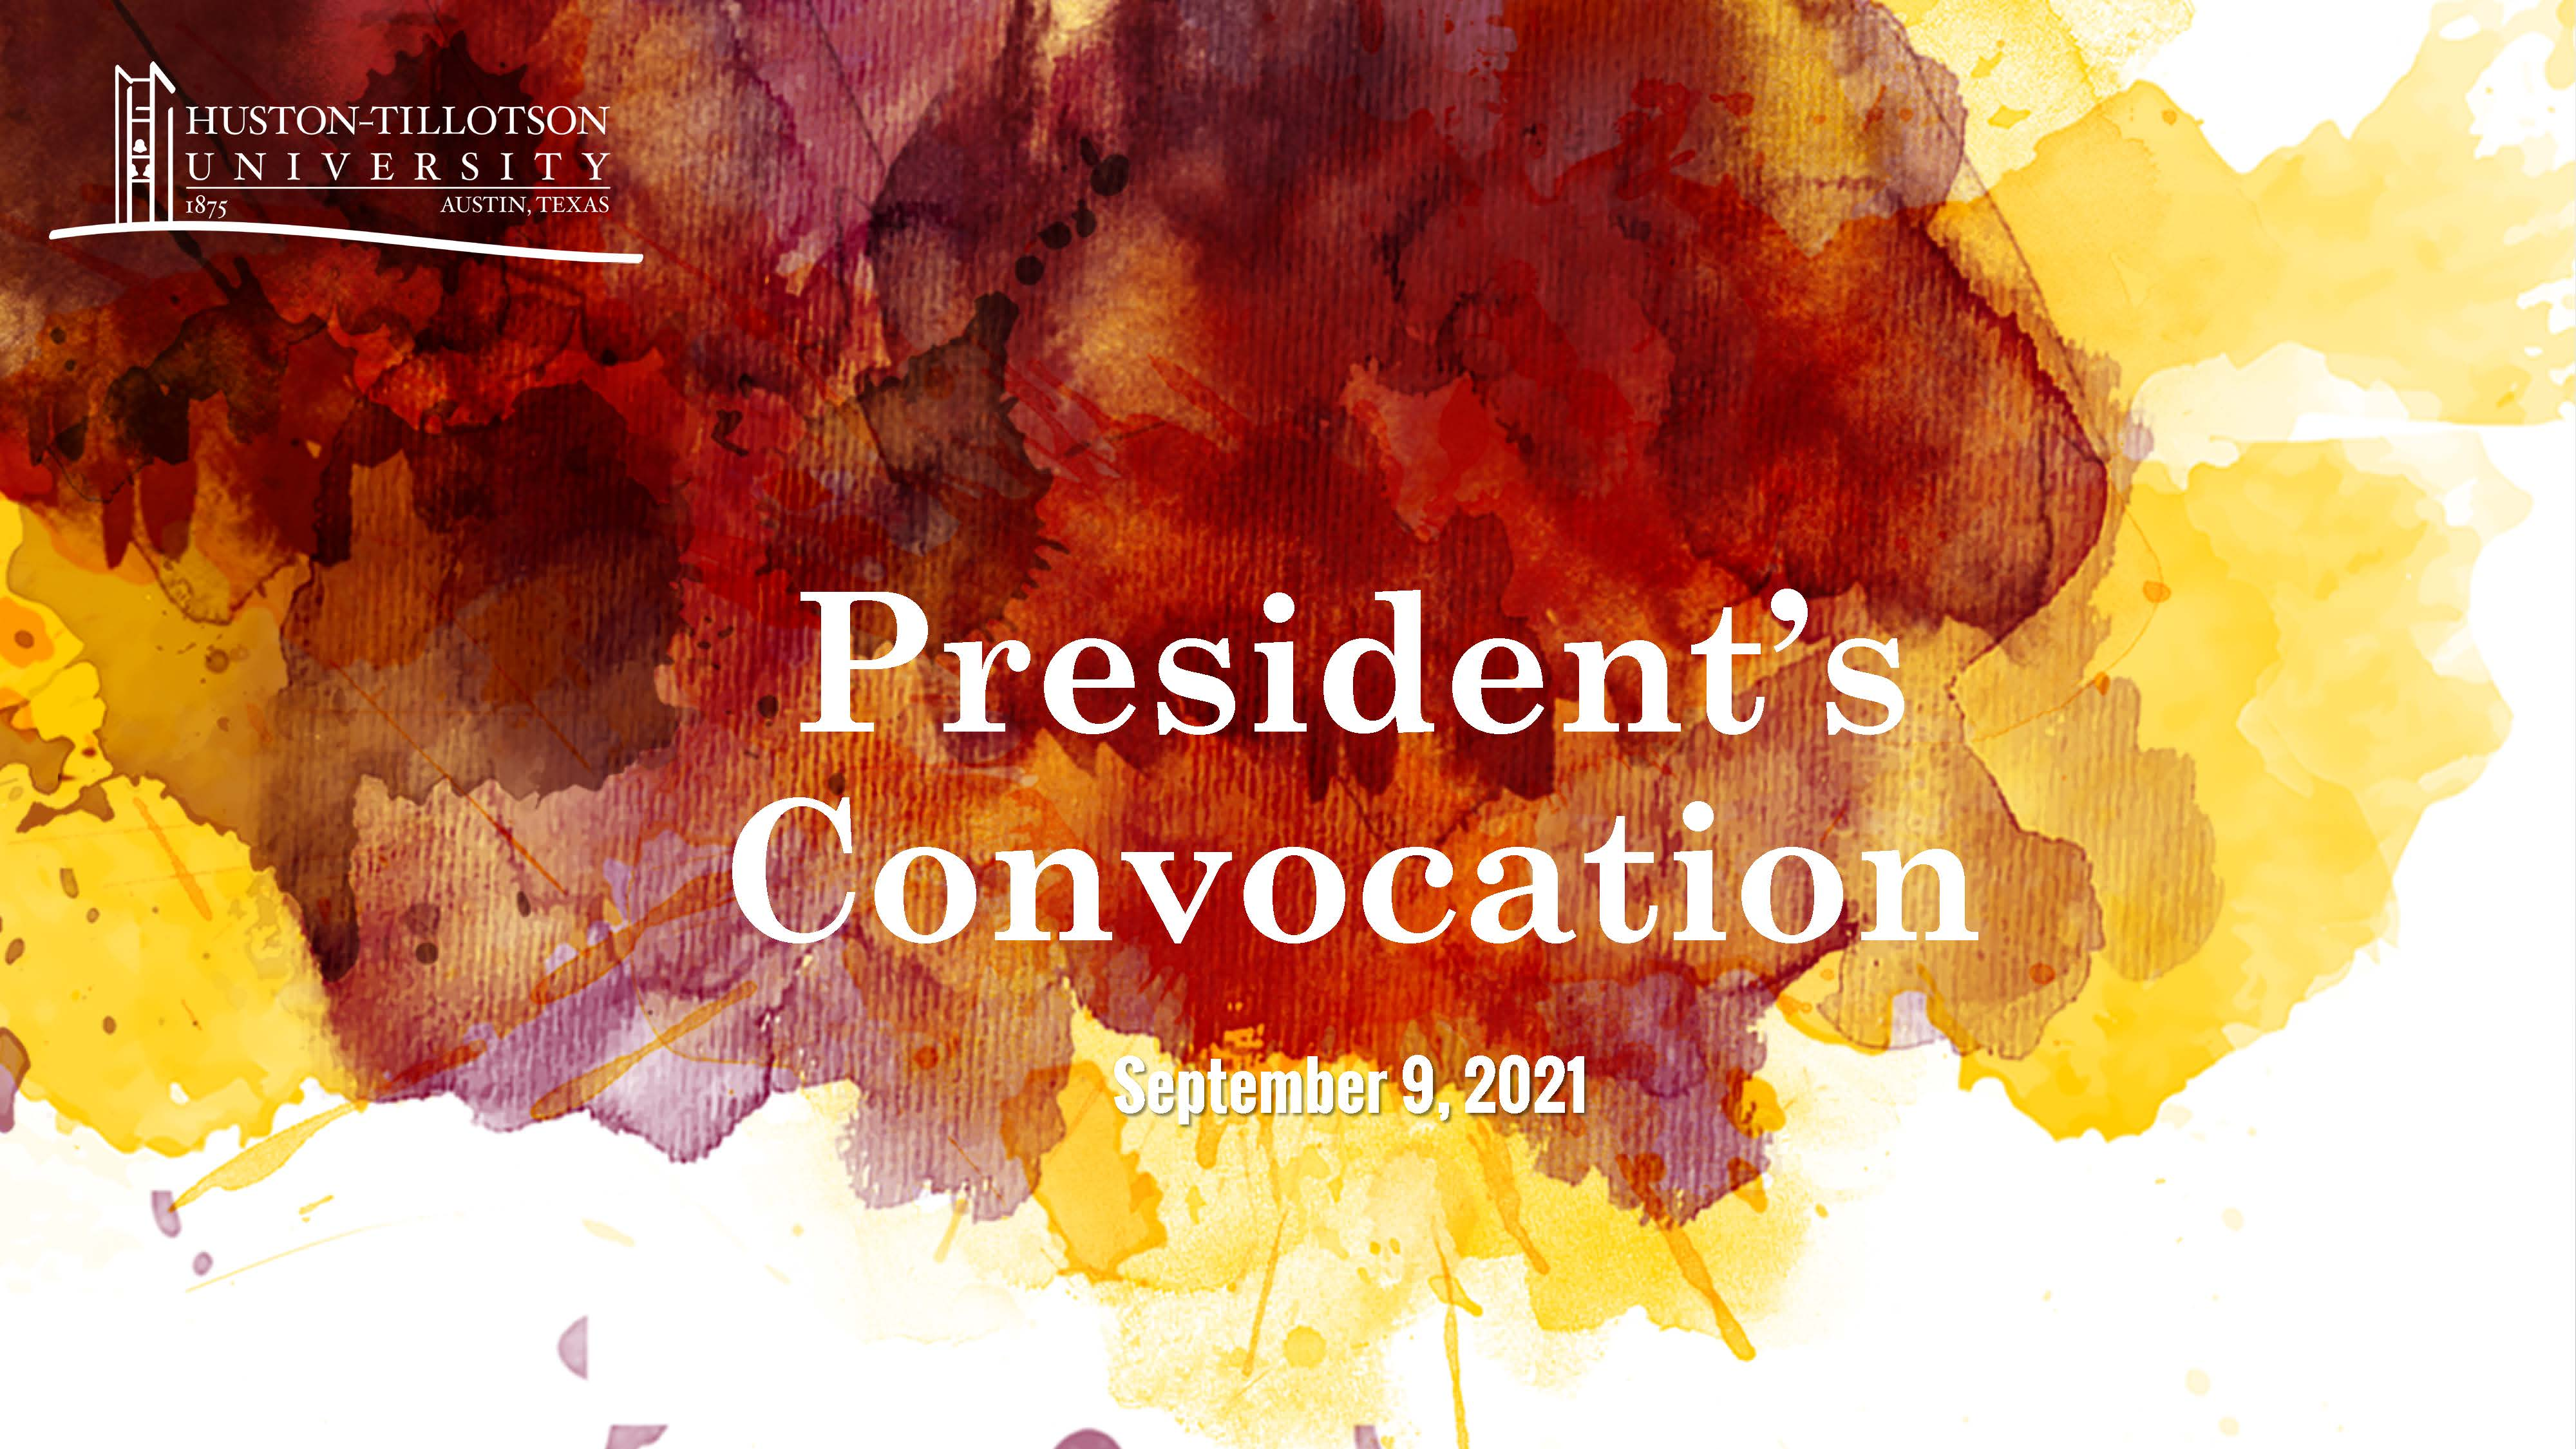 President's Convocation